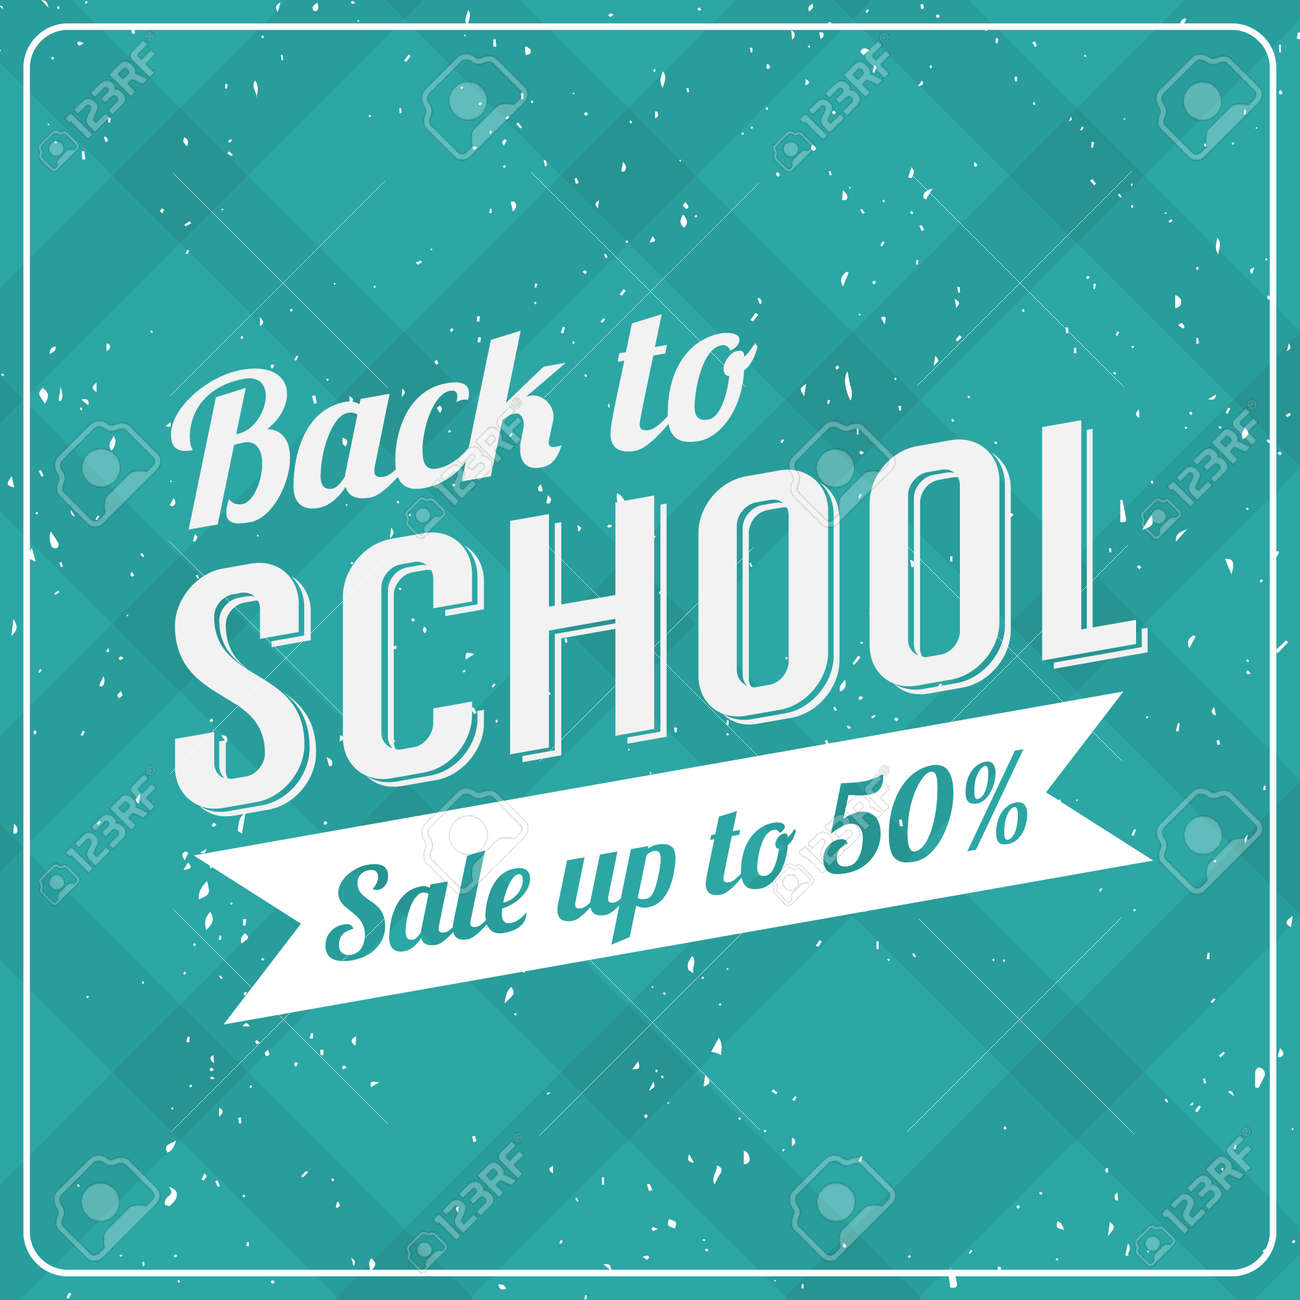 Back to School Typographic - Vintage Style Back to School Hot Deals Design Layout In Vector Format - 41613390